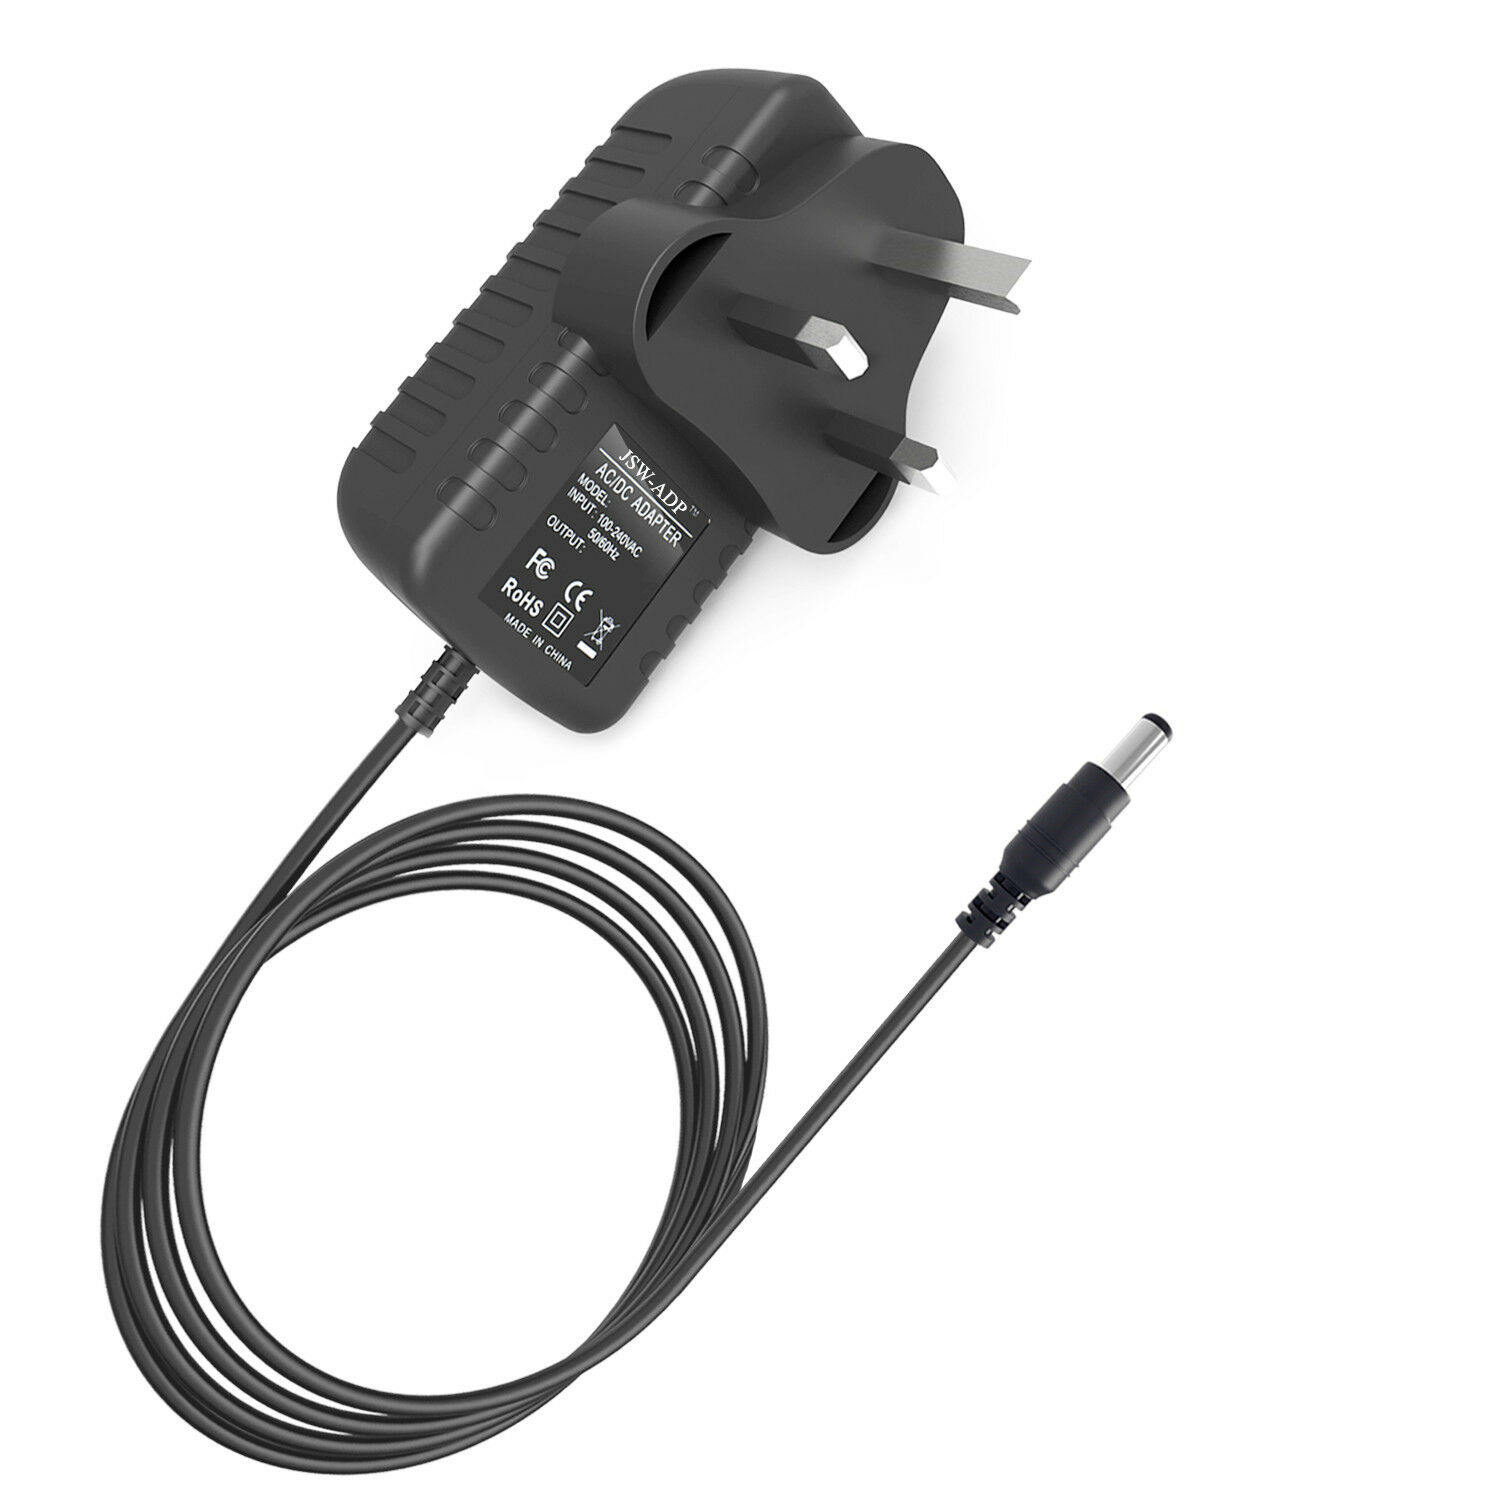 AC ADAPTER FOR GTECH SW02 SW08 NiMH Battery Charger Cordless Sweeper Round Jack